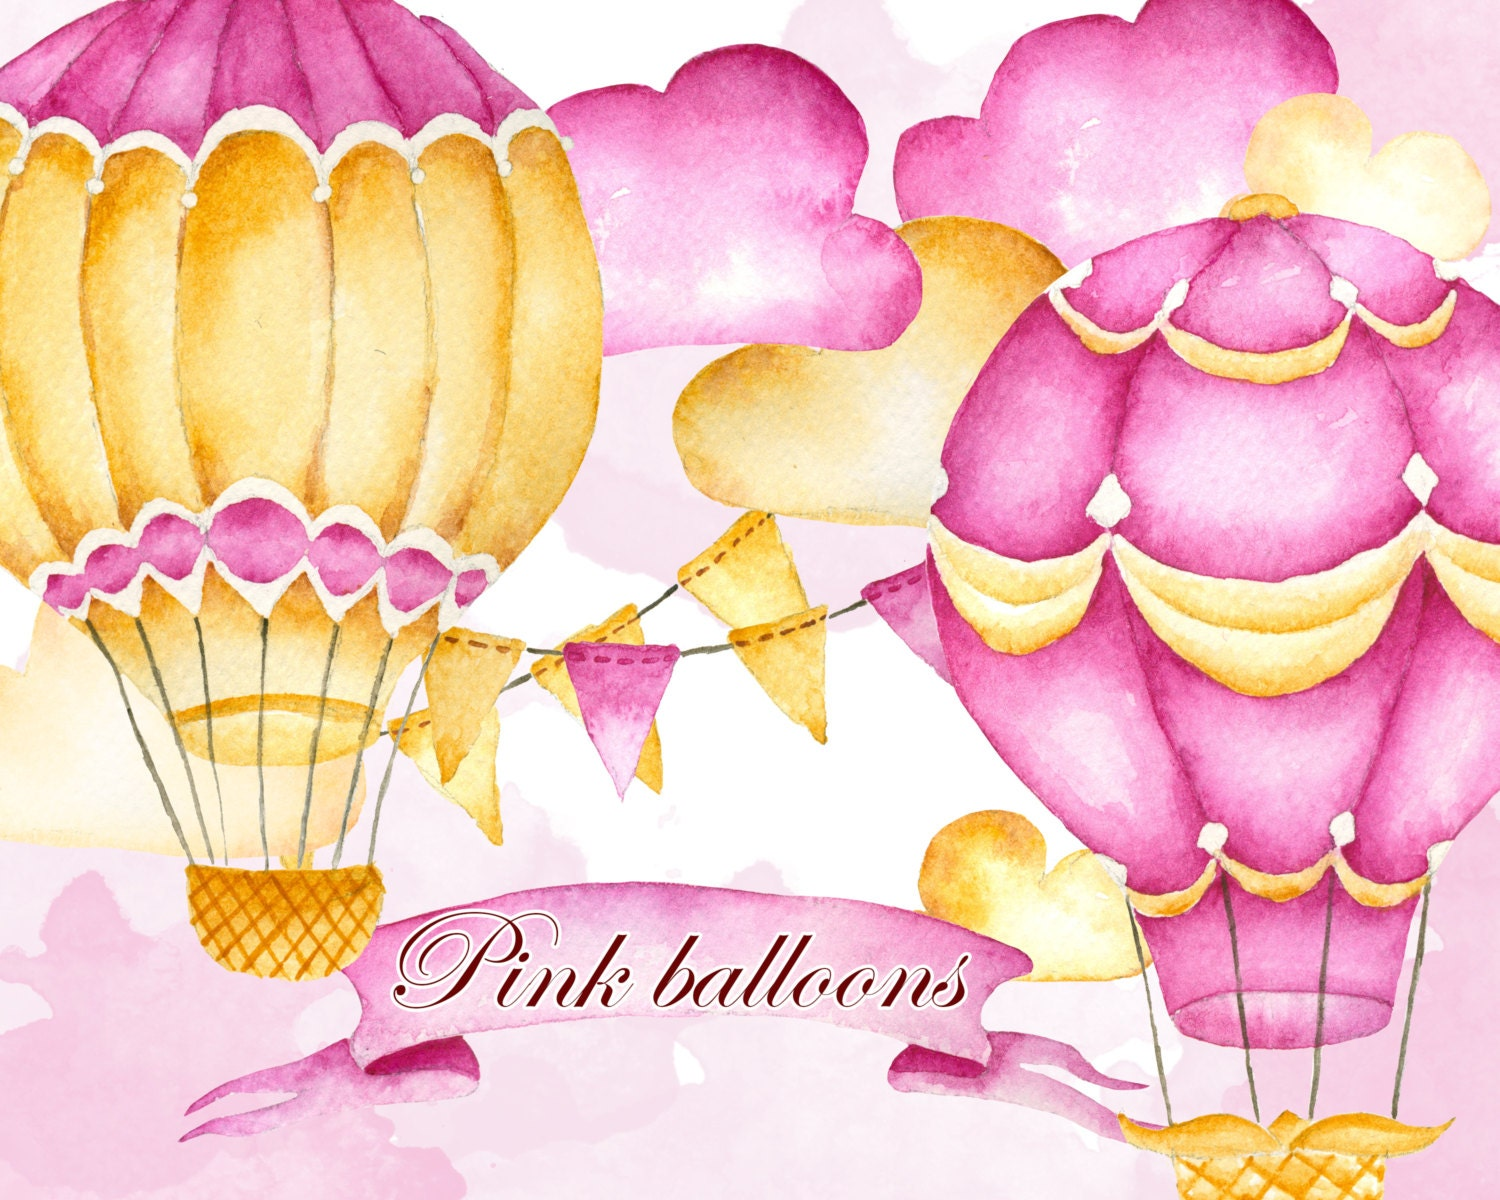 Hot air balloons clipart Airballoons clipart Watercolor | Etsy